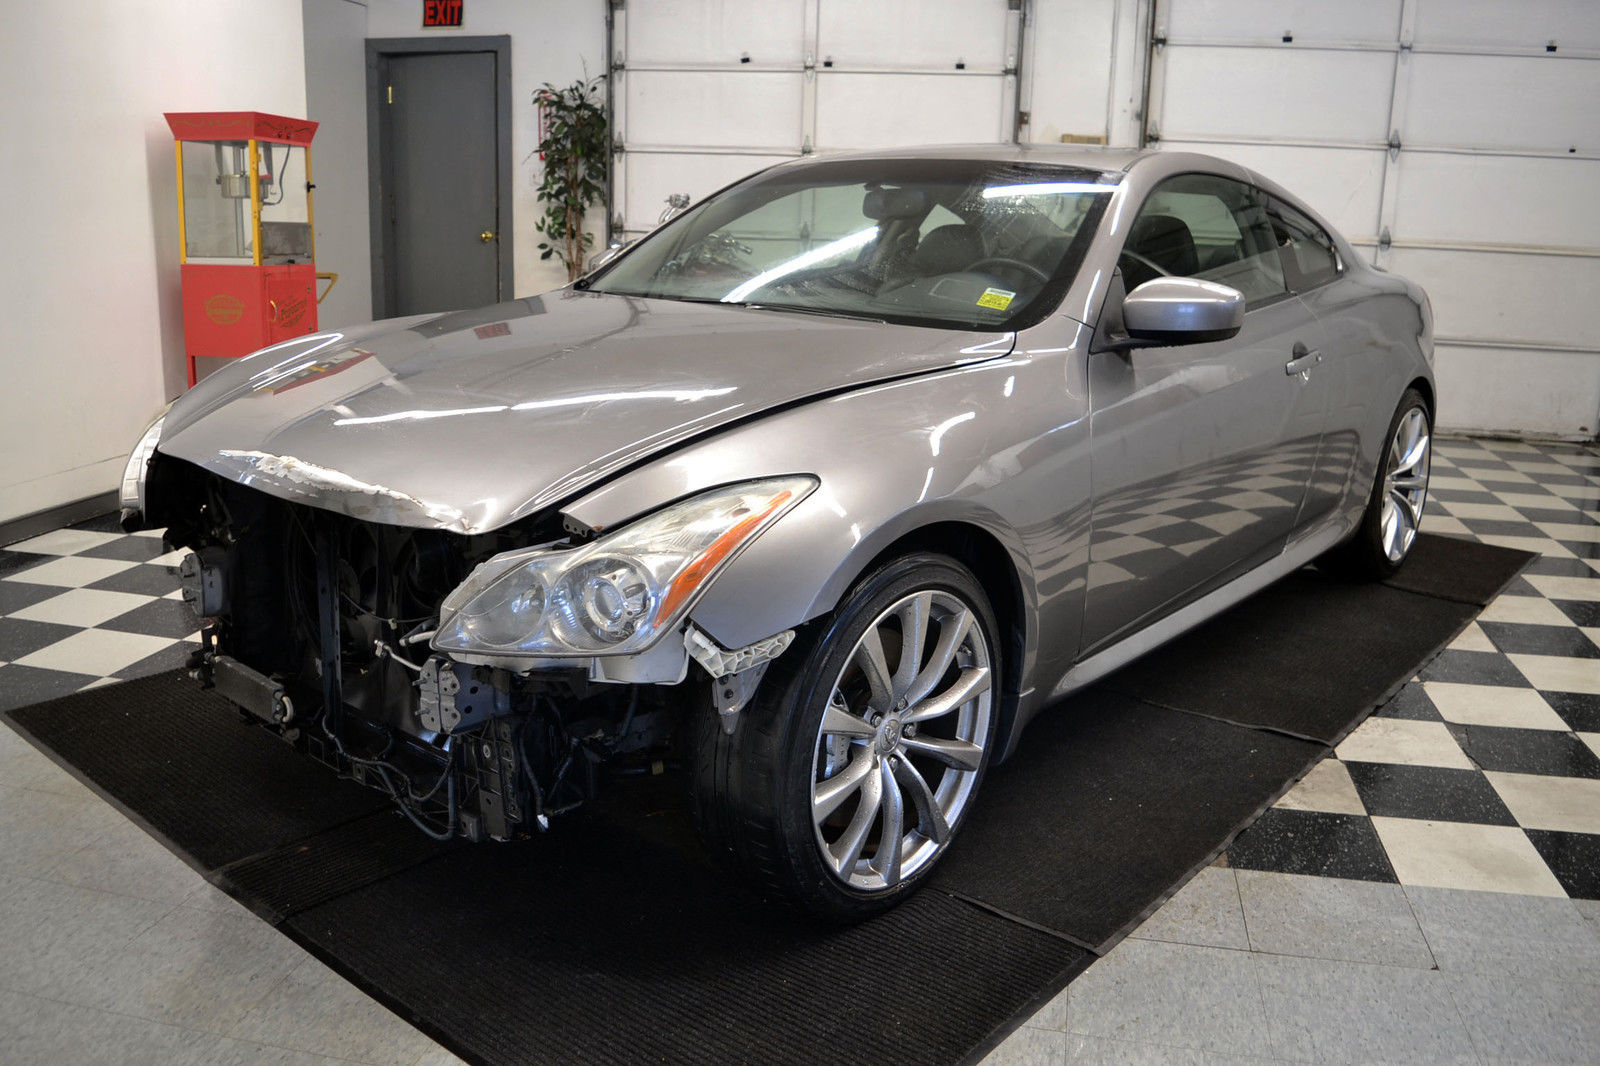 2008 infiniti g37 s coupe damaged wrecked for sale - Infiniti g37 red interior for sale ...